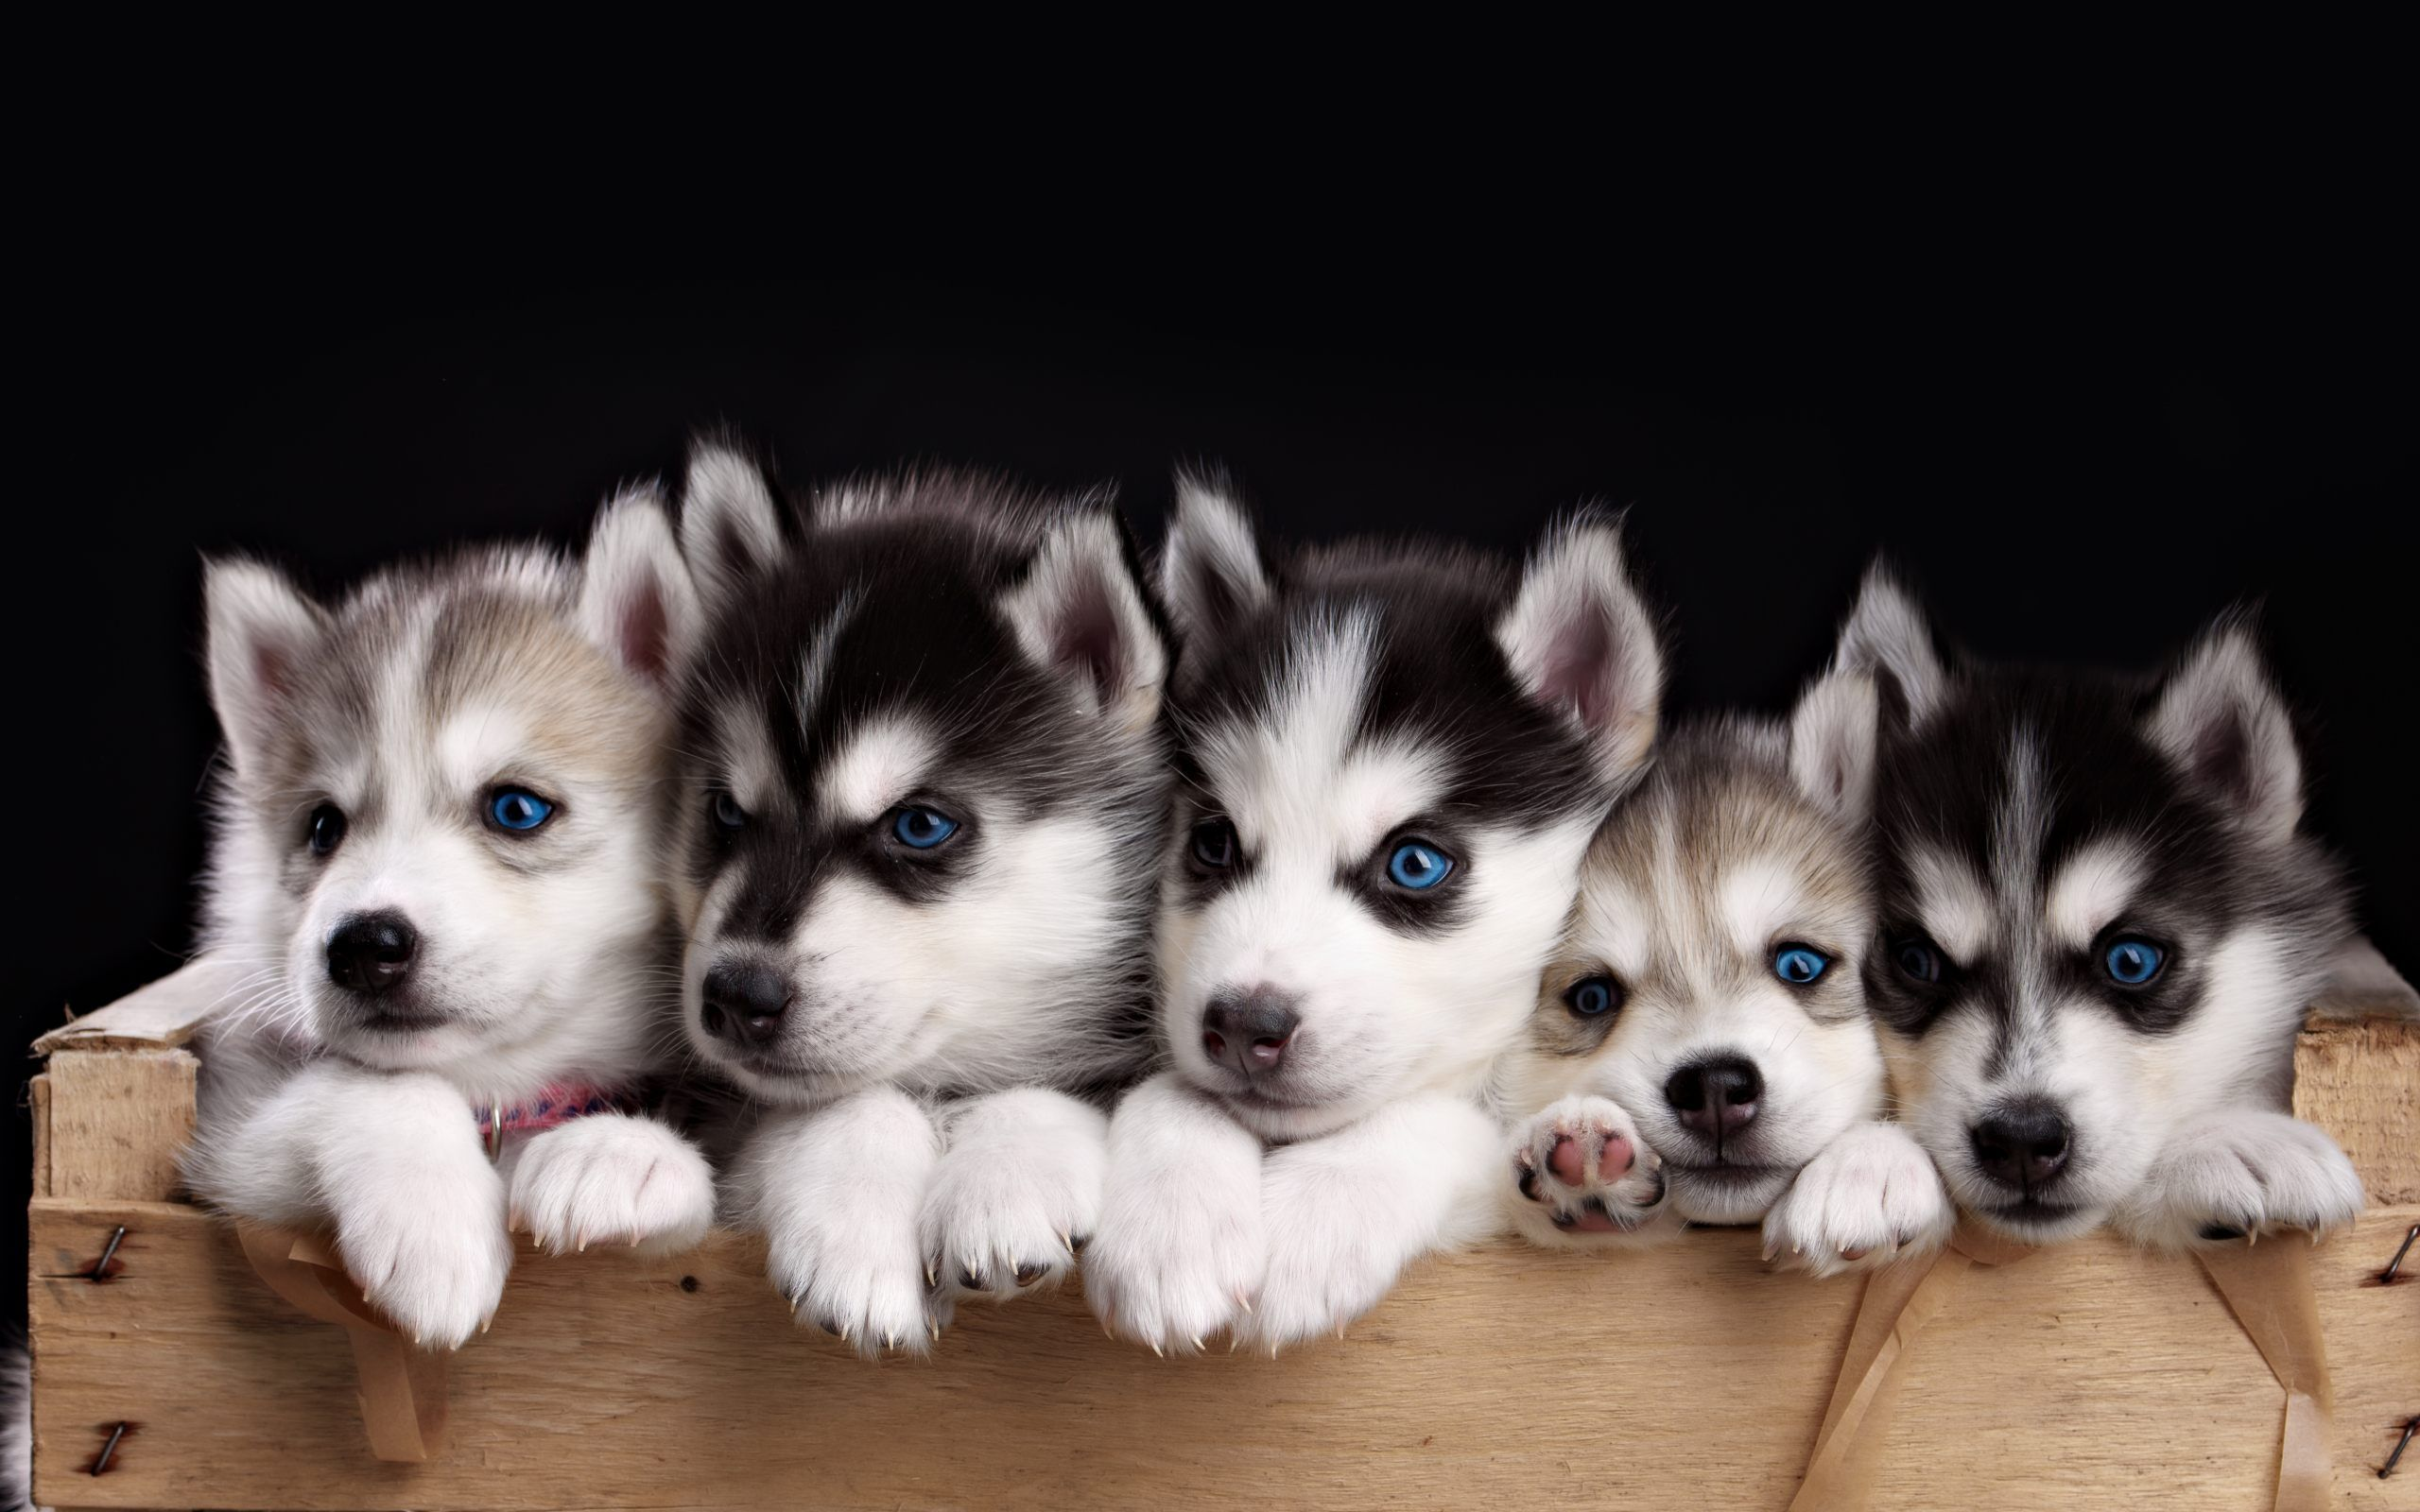 Husky Puppies Wallpapers PC # 5S141M1 | WallpapersExpert.com